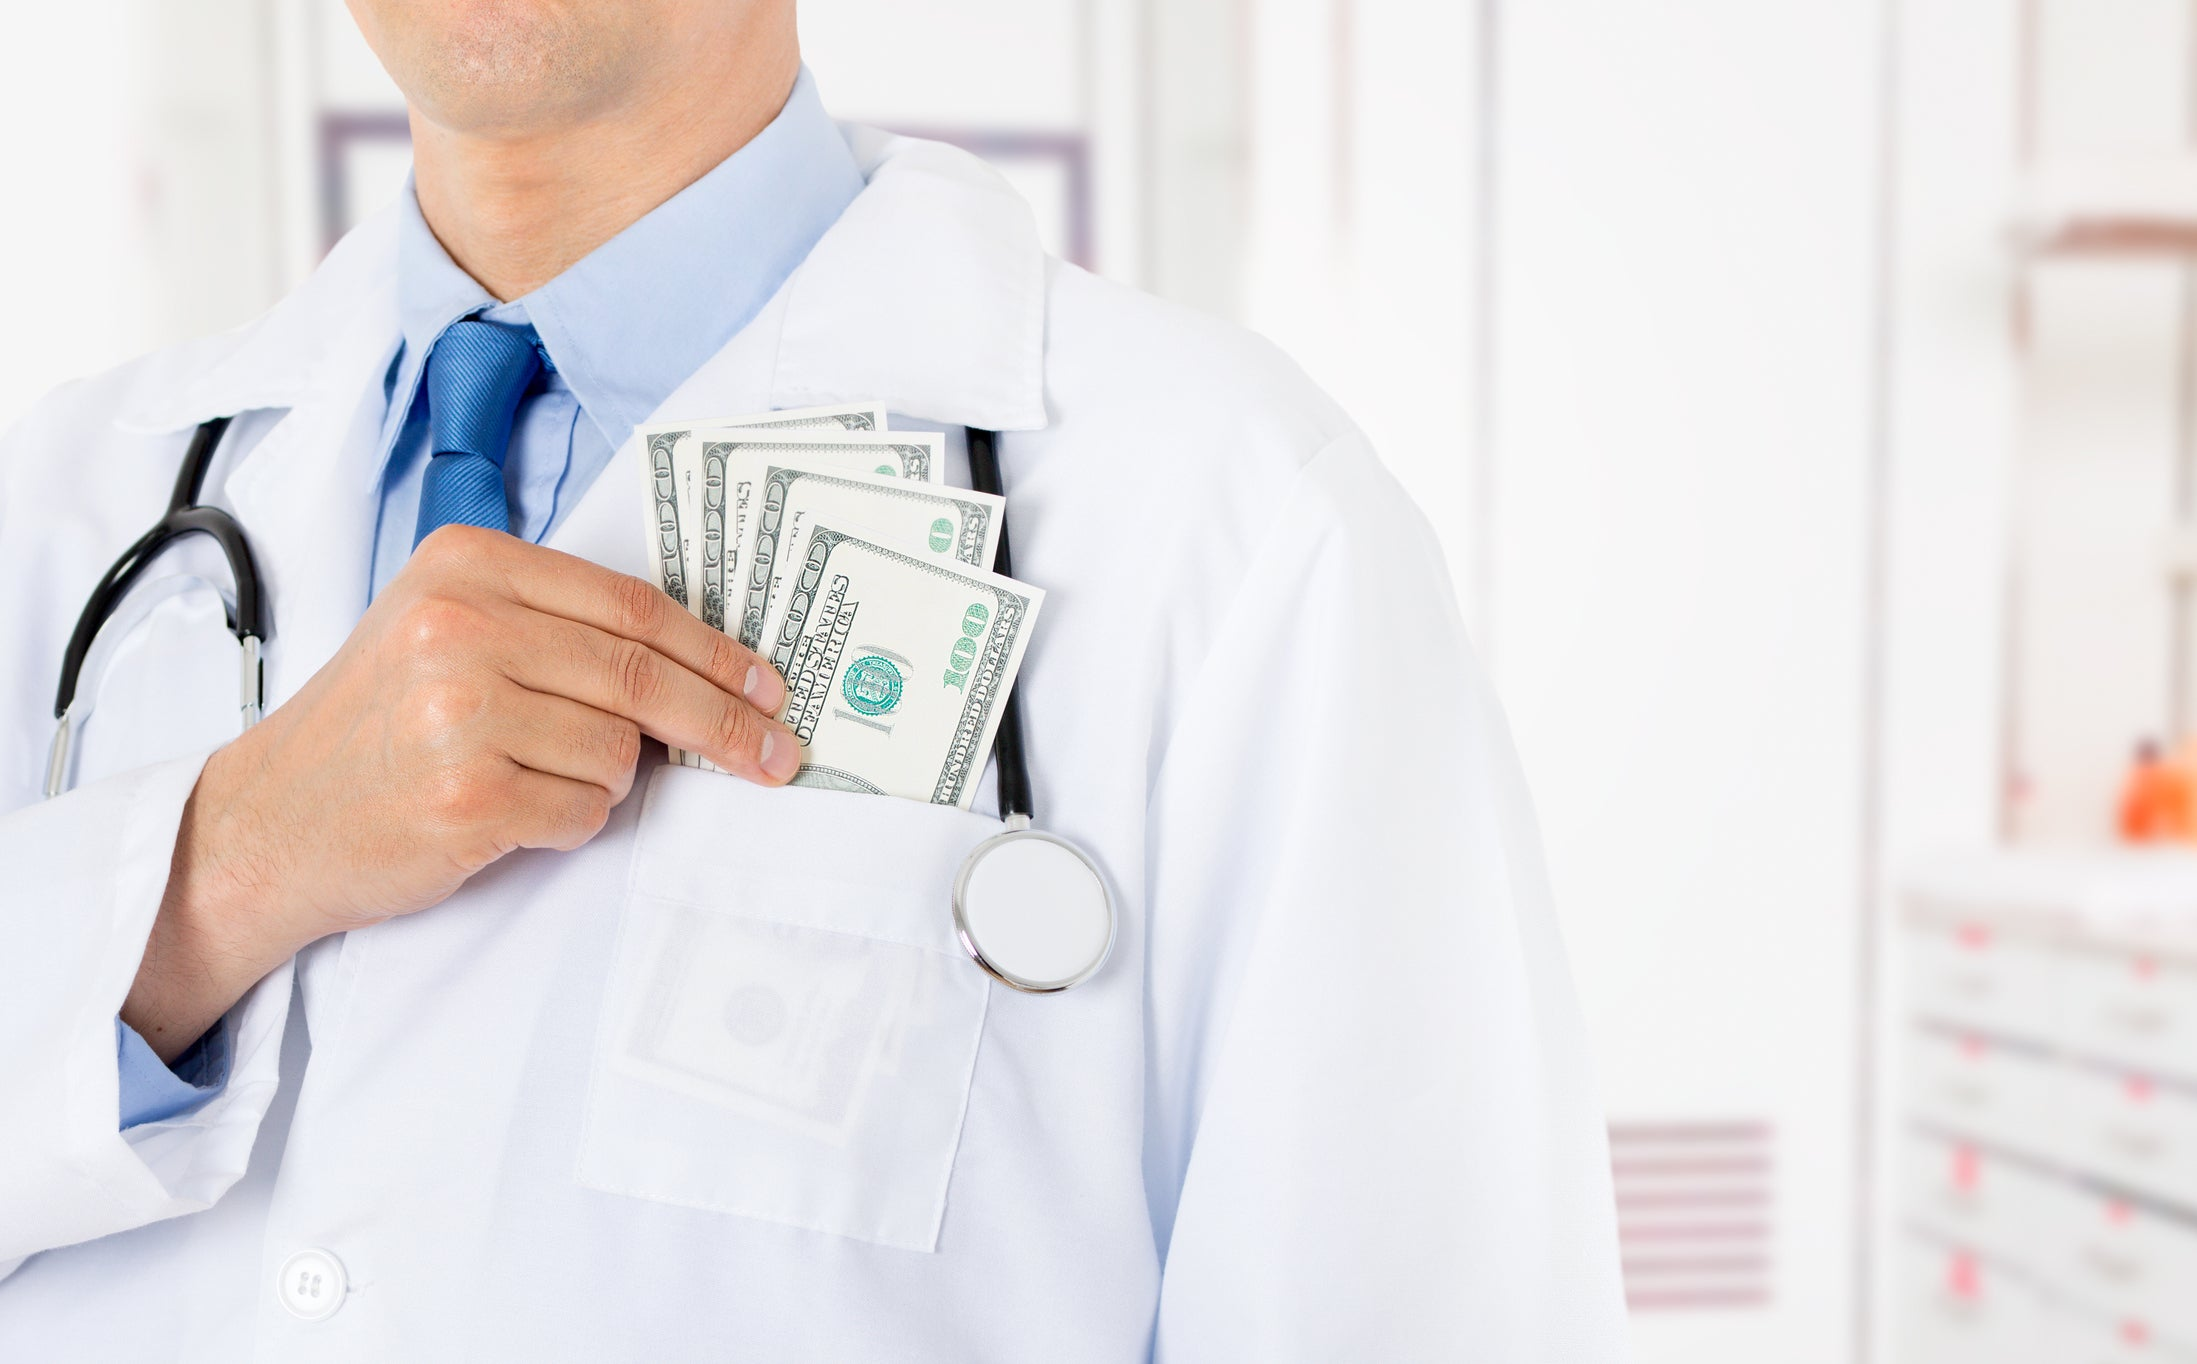 3 Top Healthcare Stocks That Can Make You Richer in 2021 (and Beyond)